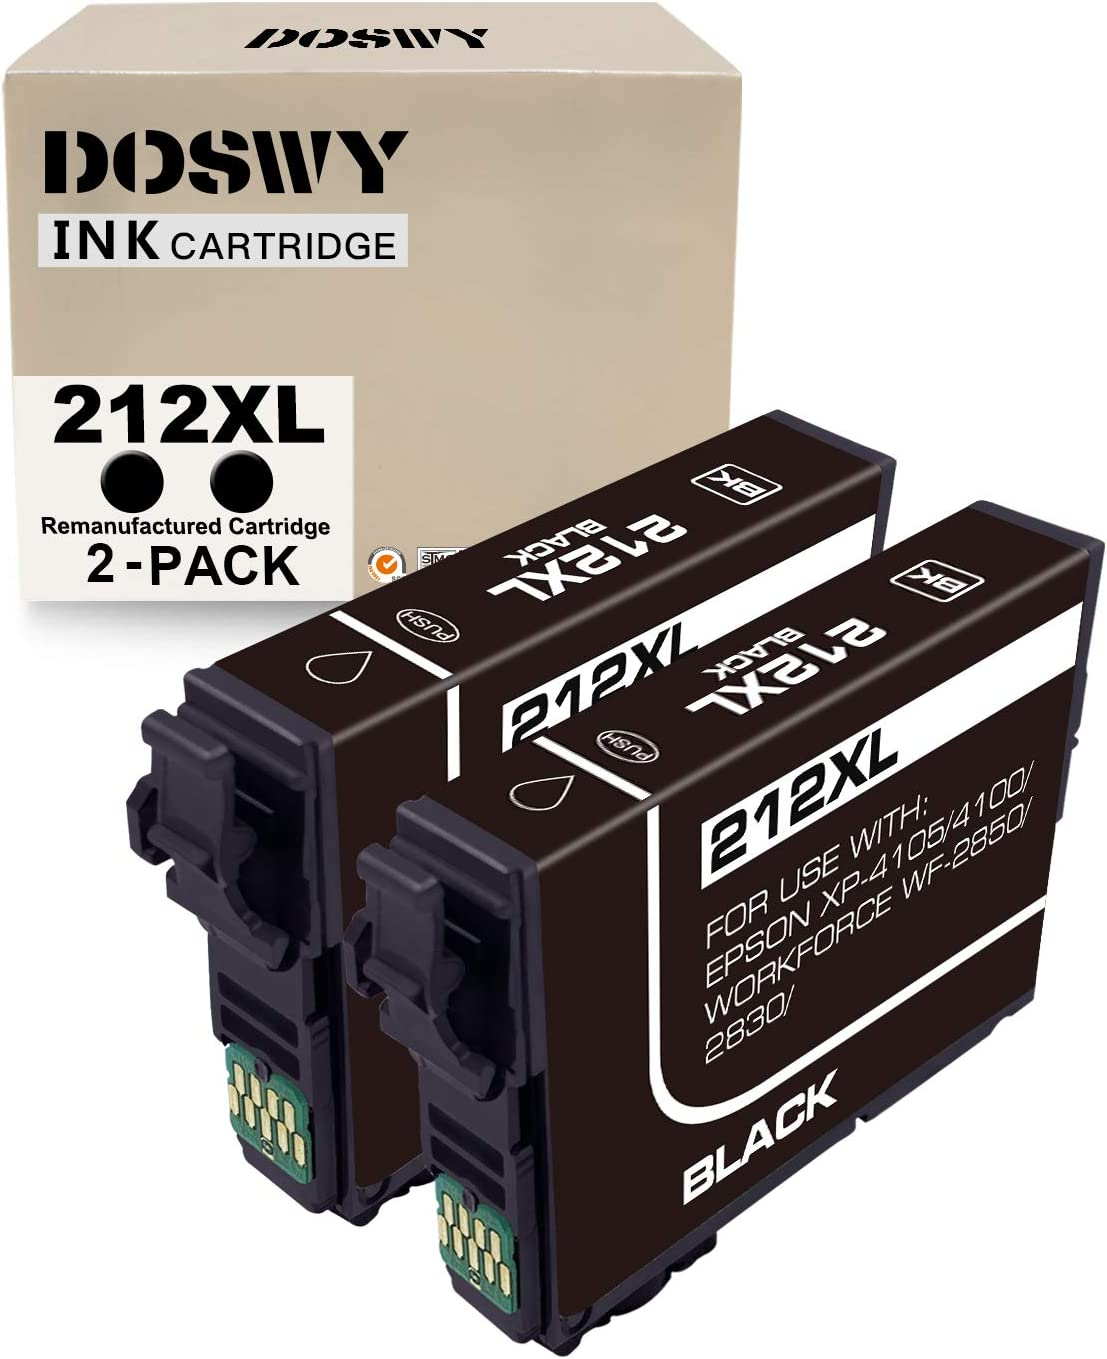 Doswy 2 Pack 212XL Remanufacture Ink Cartridge Replacement for Epson 212XL 212 T212XL High Yeild for Workforce WF-2830 WF-2850 Expression Home XP-4100 XP-4105 Printer (2 Black)